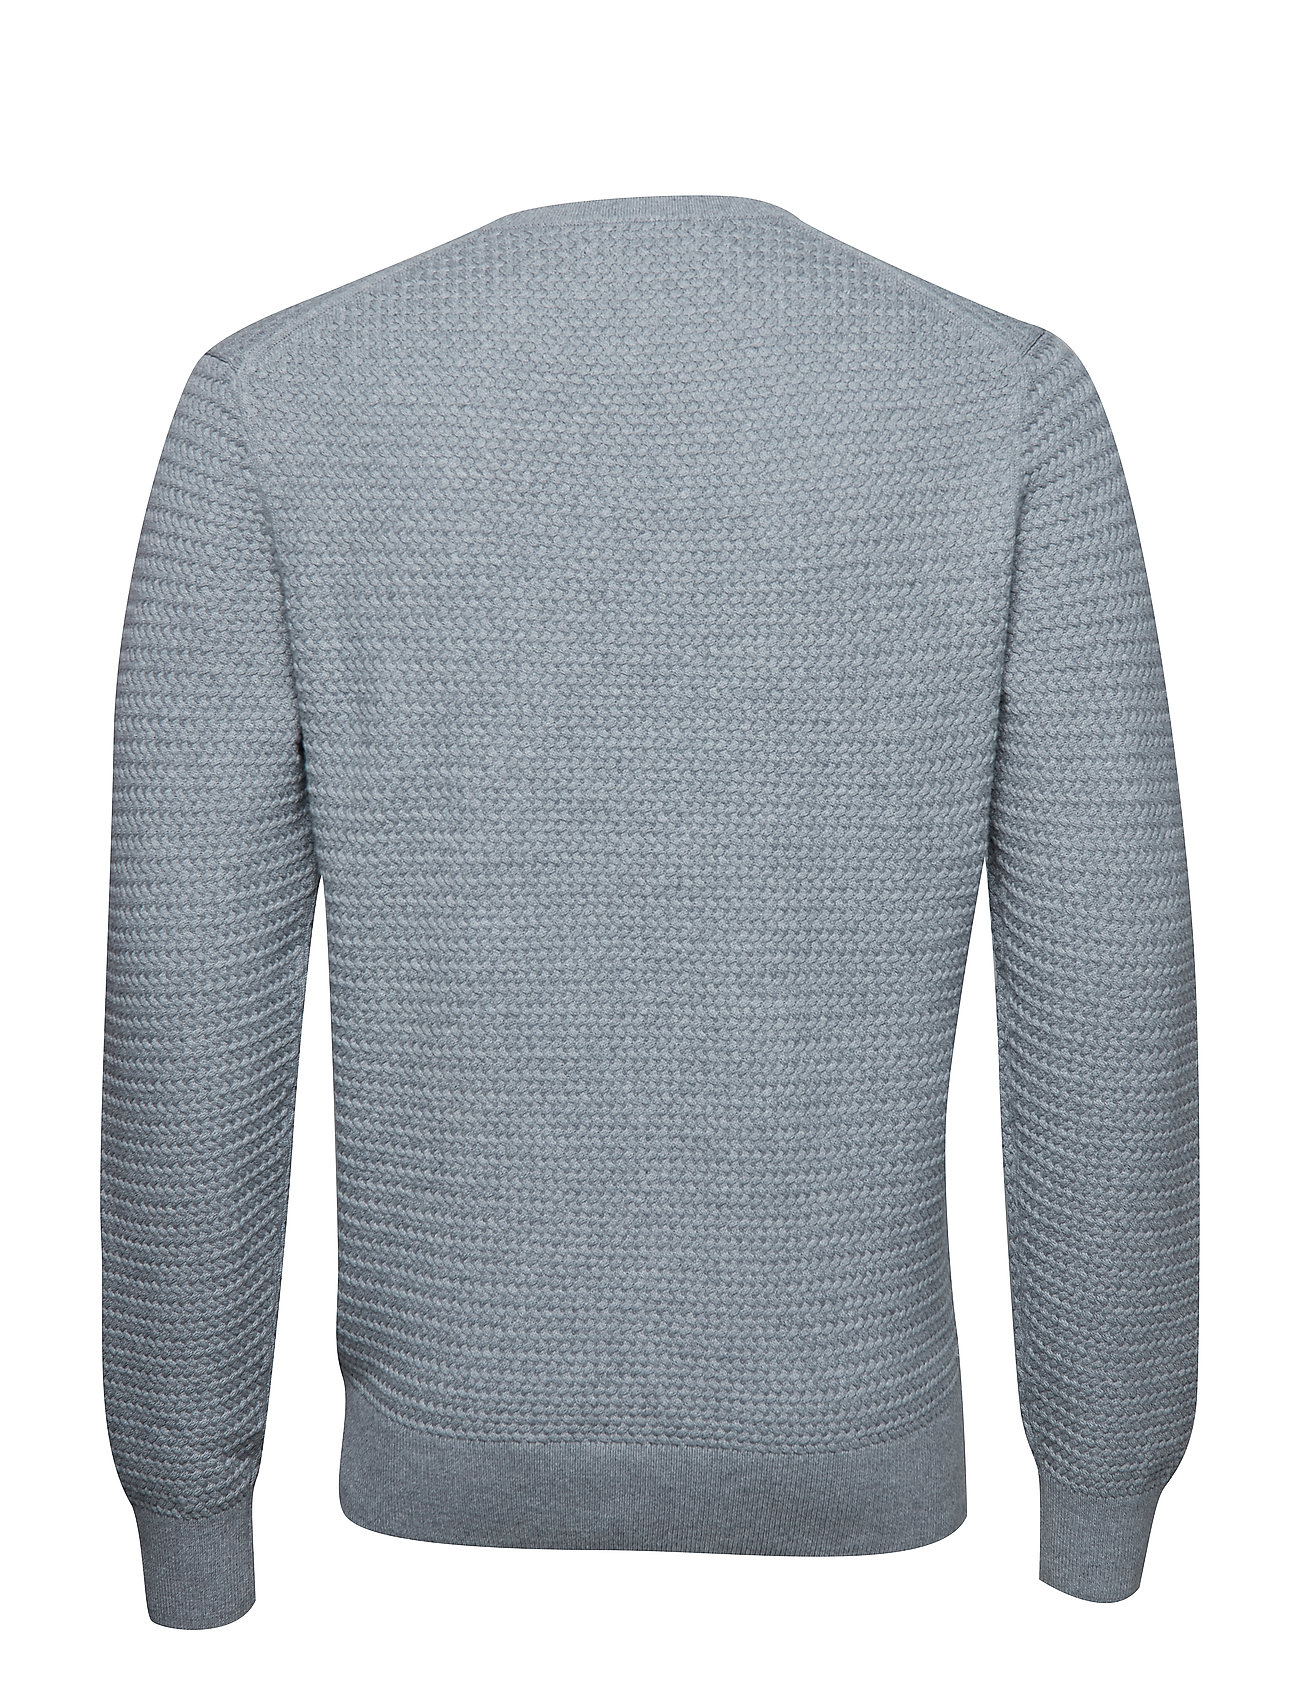 C Cotton HeatherCalvin Klein neck Grey Structure Sweatermid W2IYD9EH